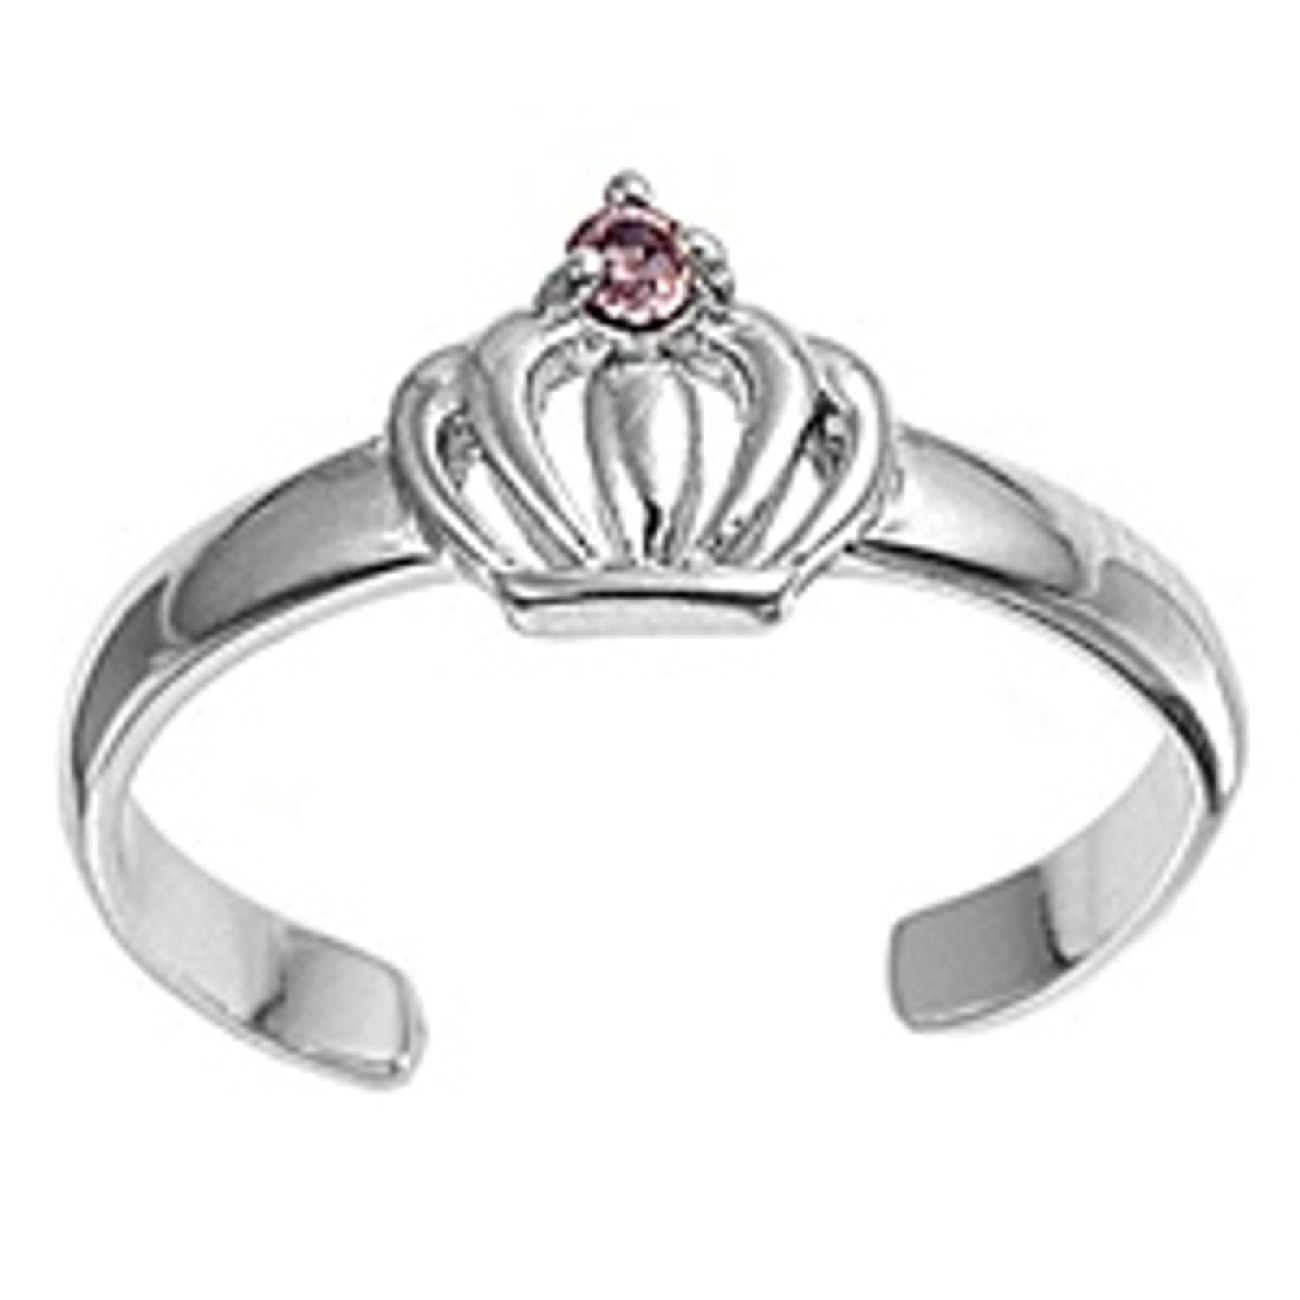 Pink Cubic Zirconia Crown Adjustable Toe Ring